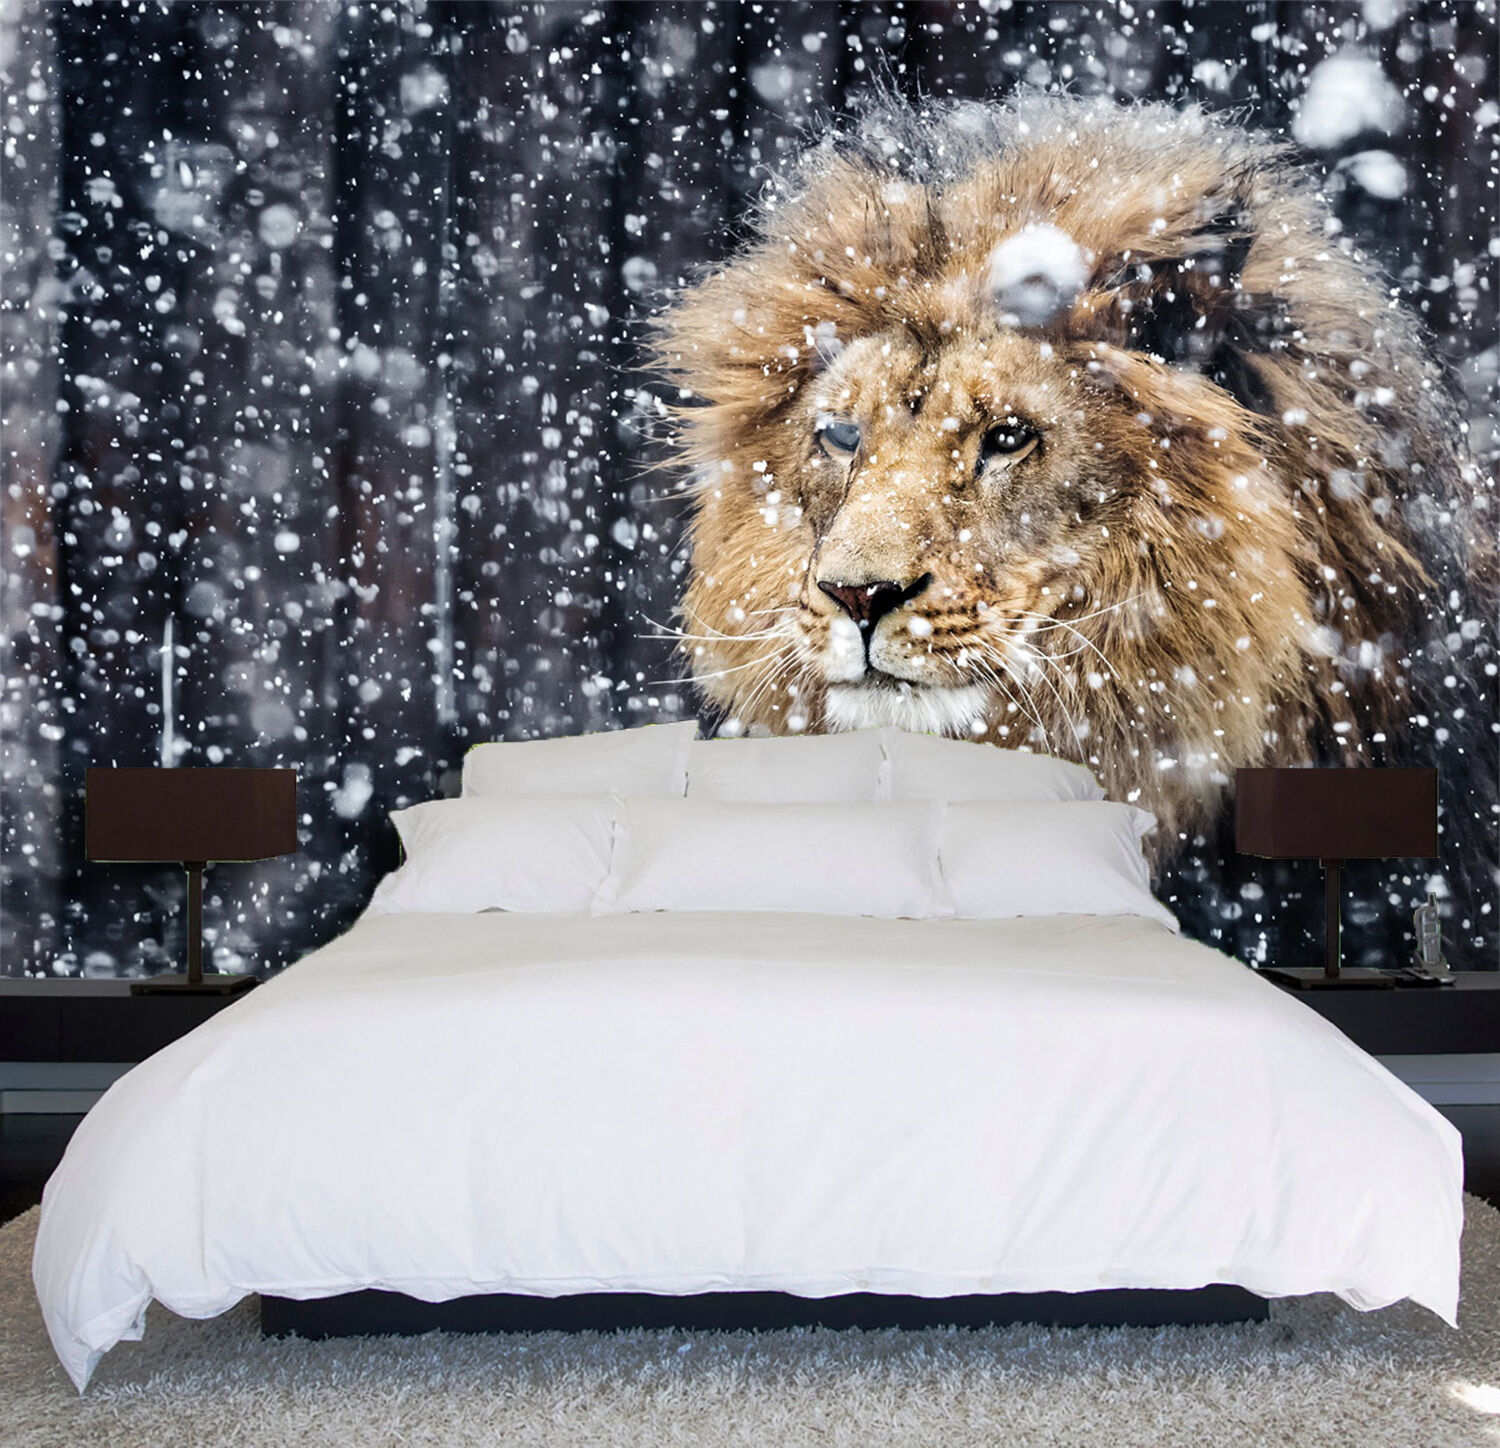 3D Snowflakes, lion Wall Paper Print Wall Decal Deco Indoor Wall Murals